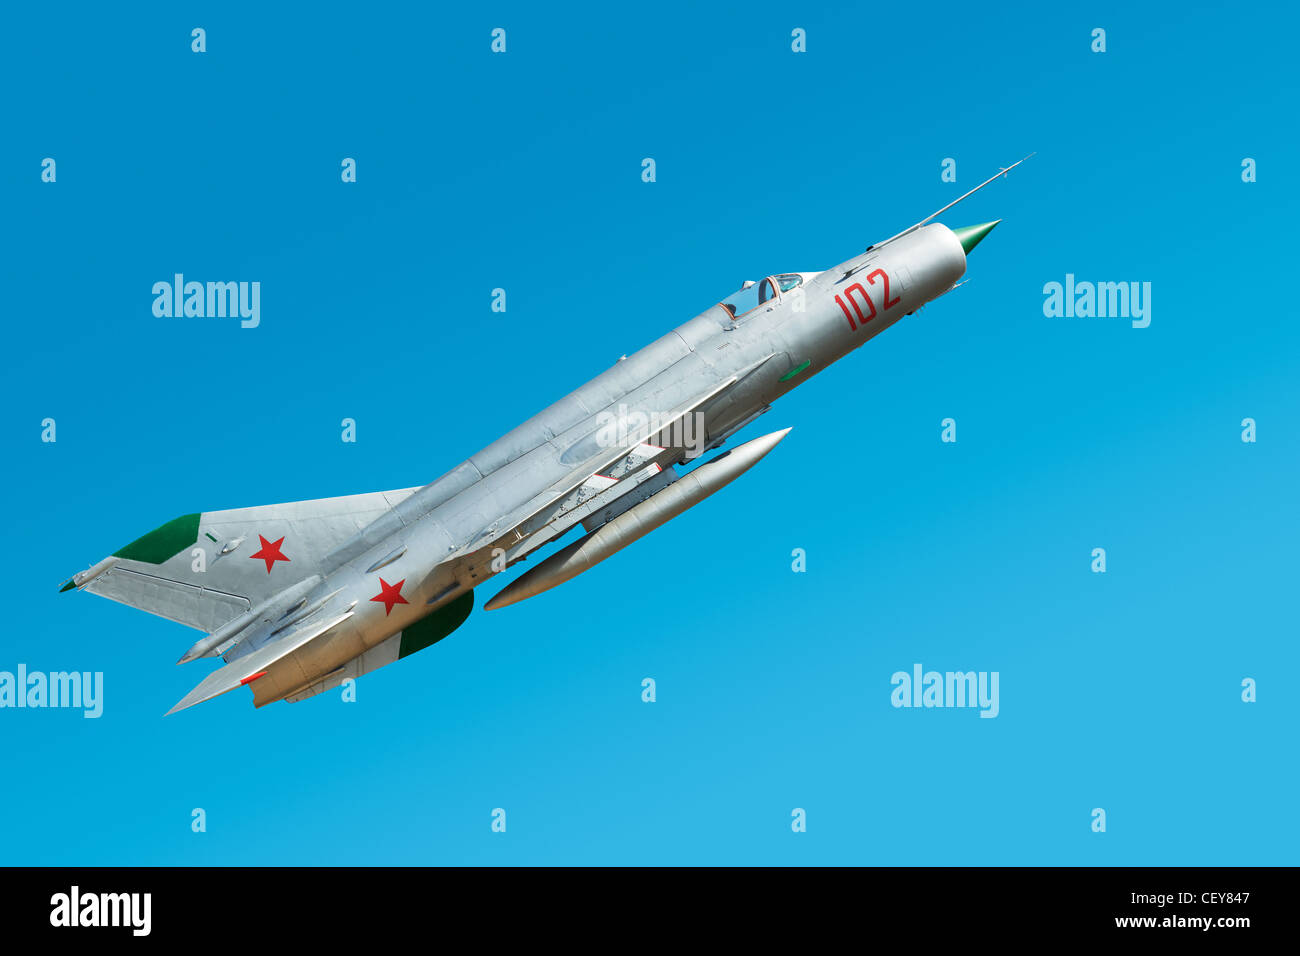 Russian military airplane in the blue sky - Stock Image